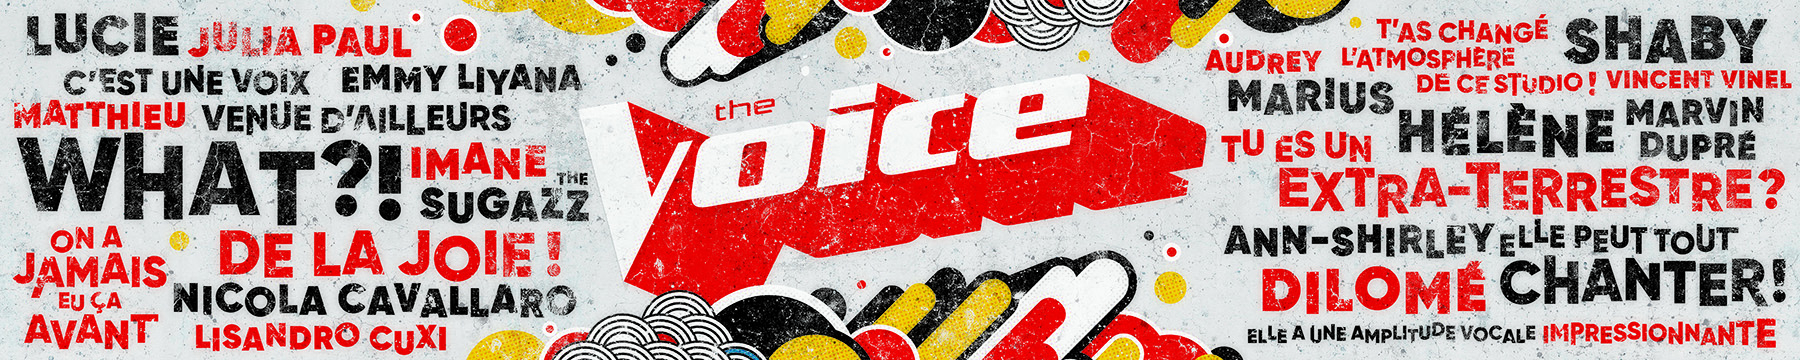 The Voice France - Fresque